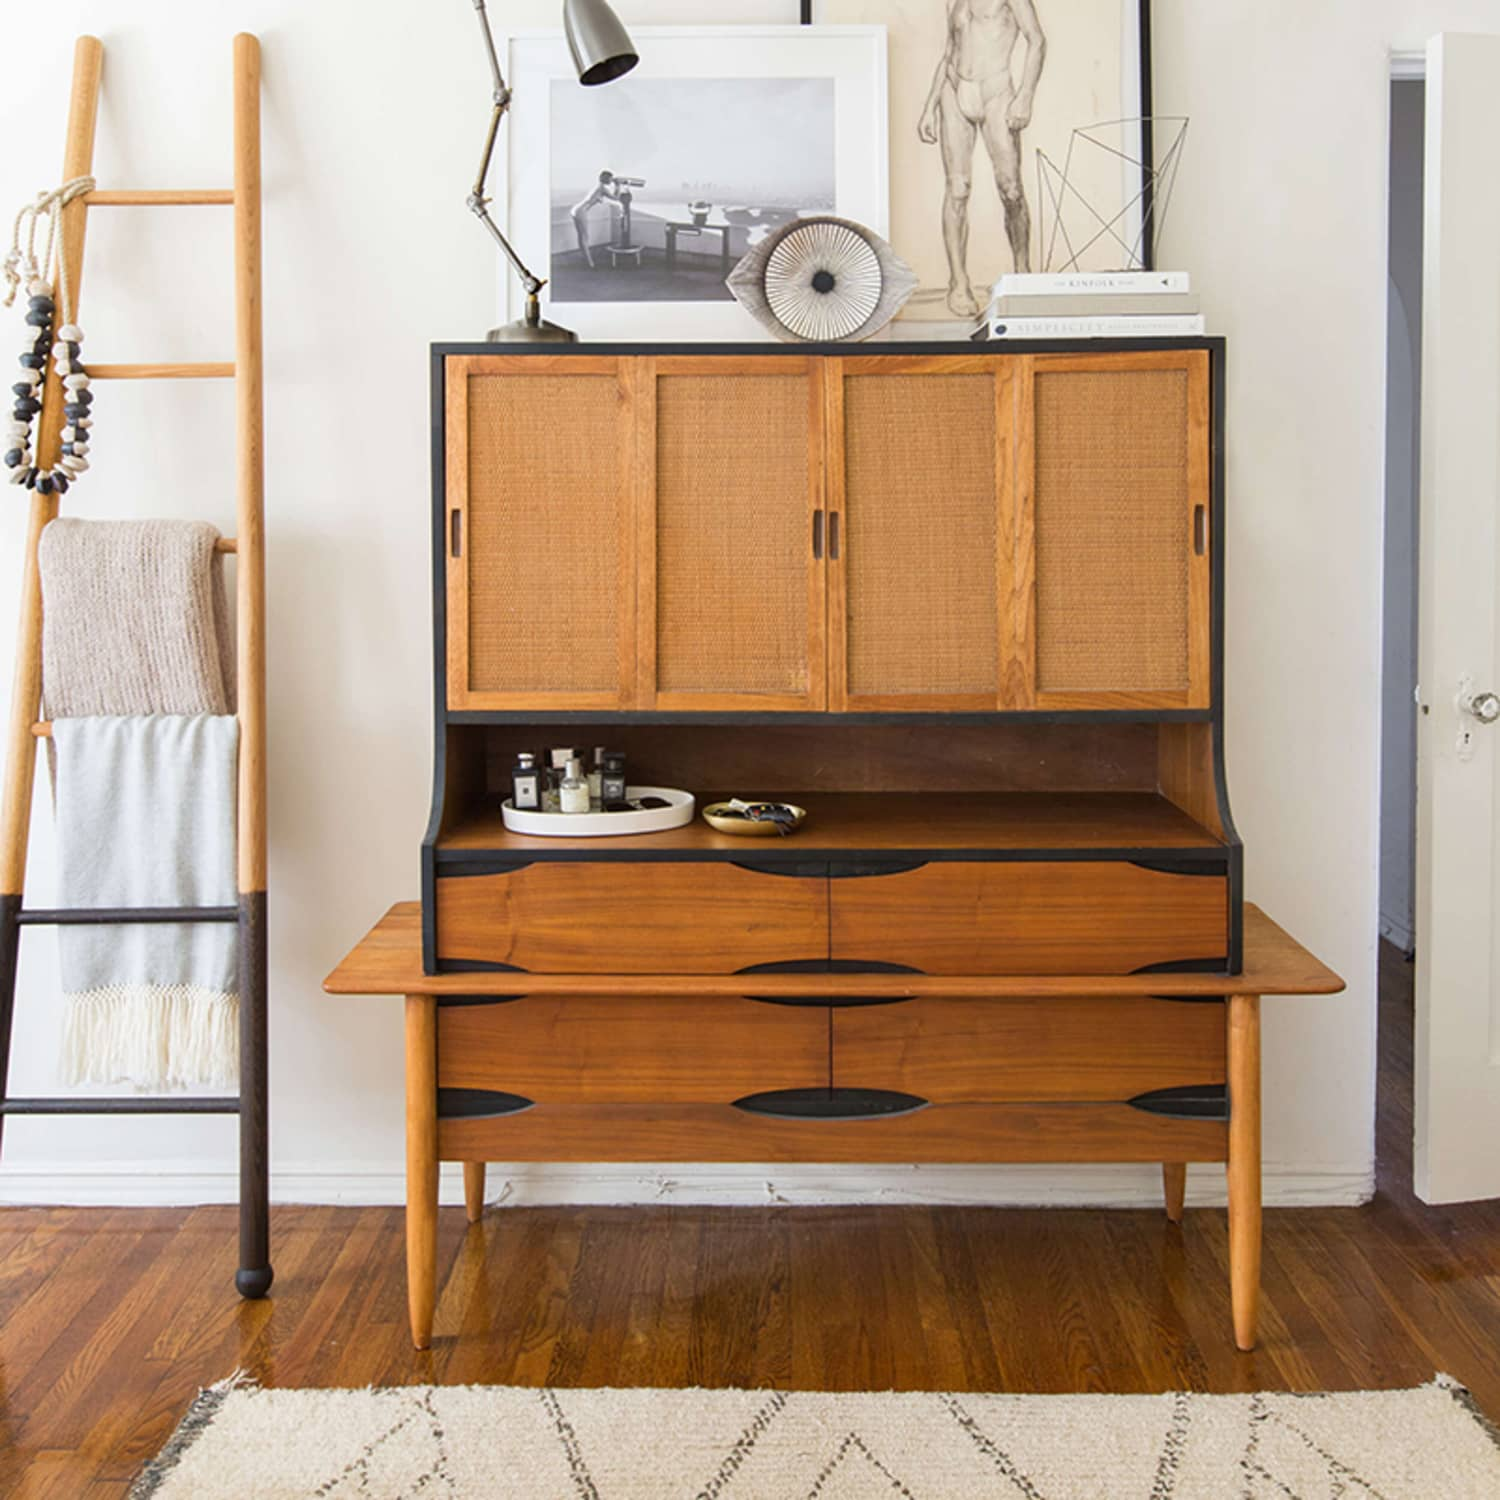 5 Furniture Resale Sites You Should Bookmark Now Apartment Therapy